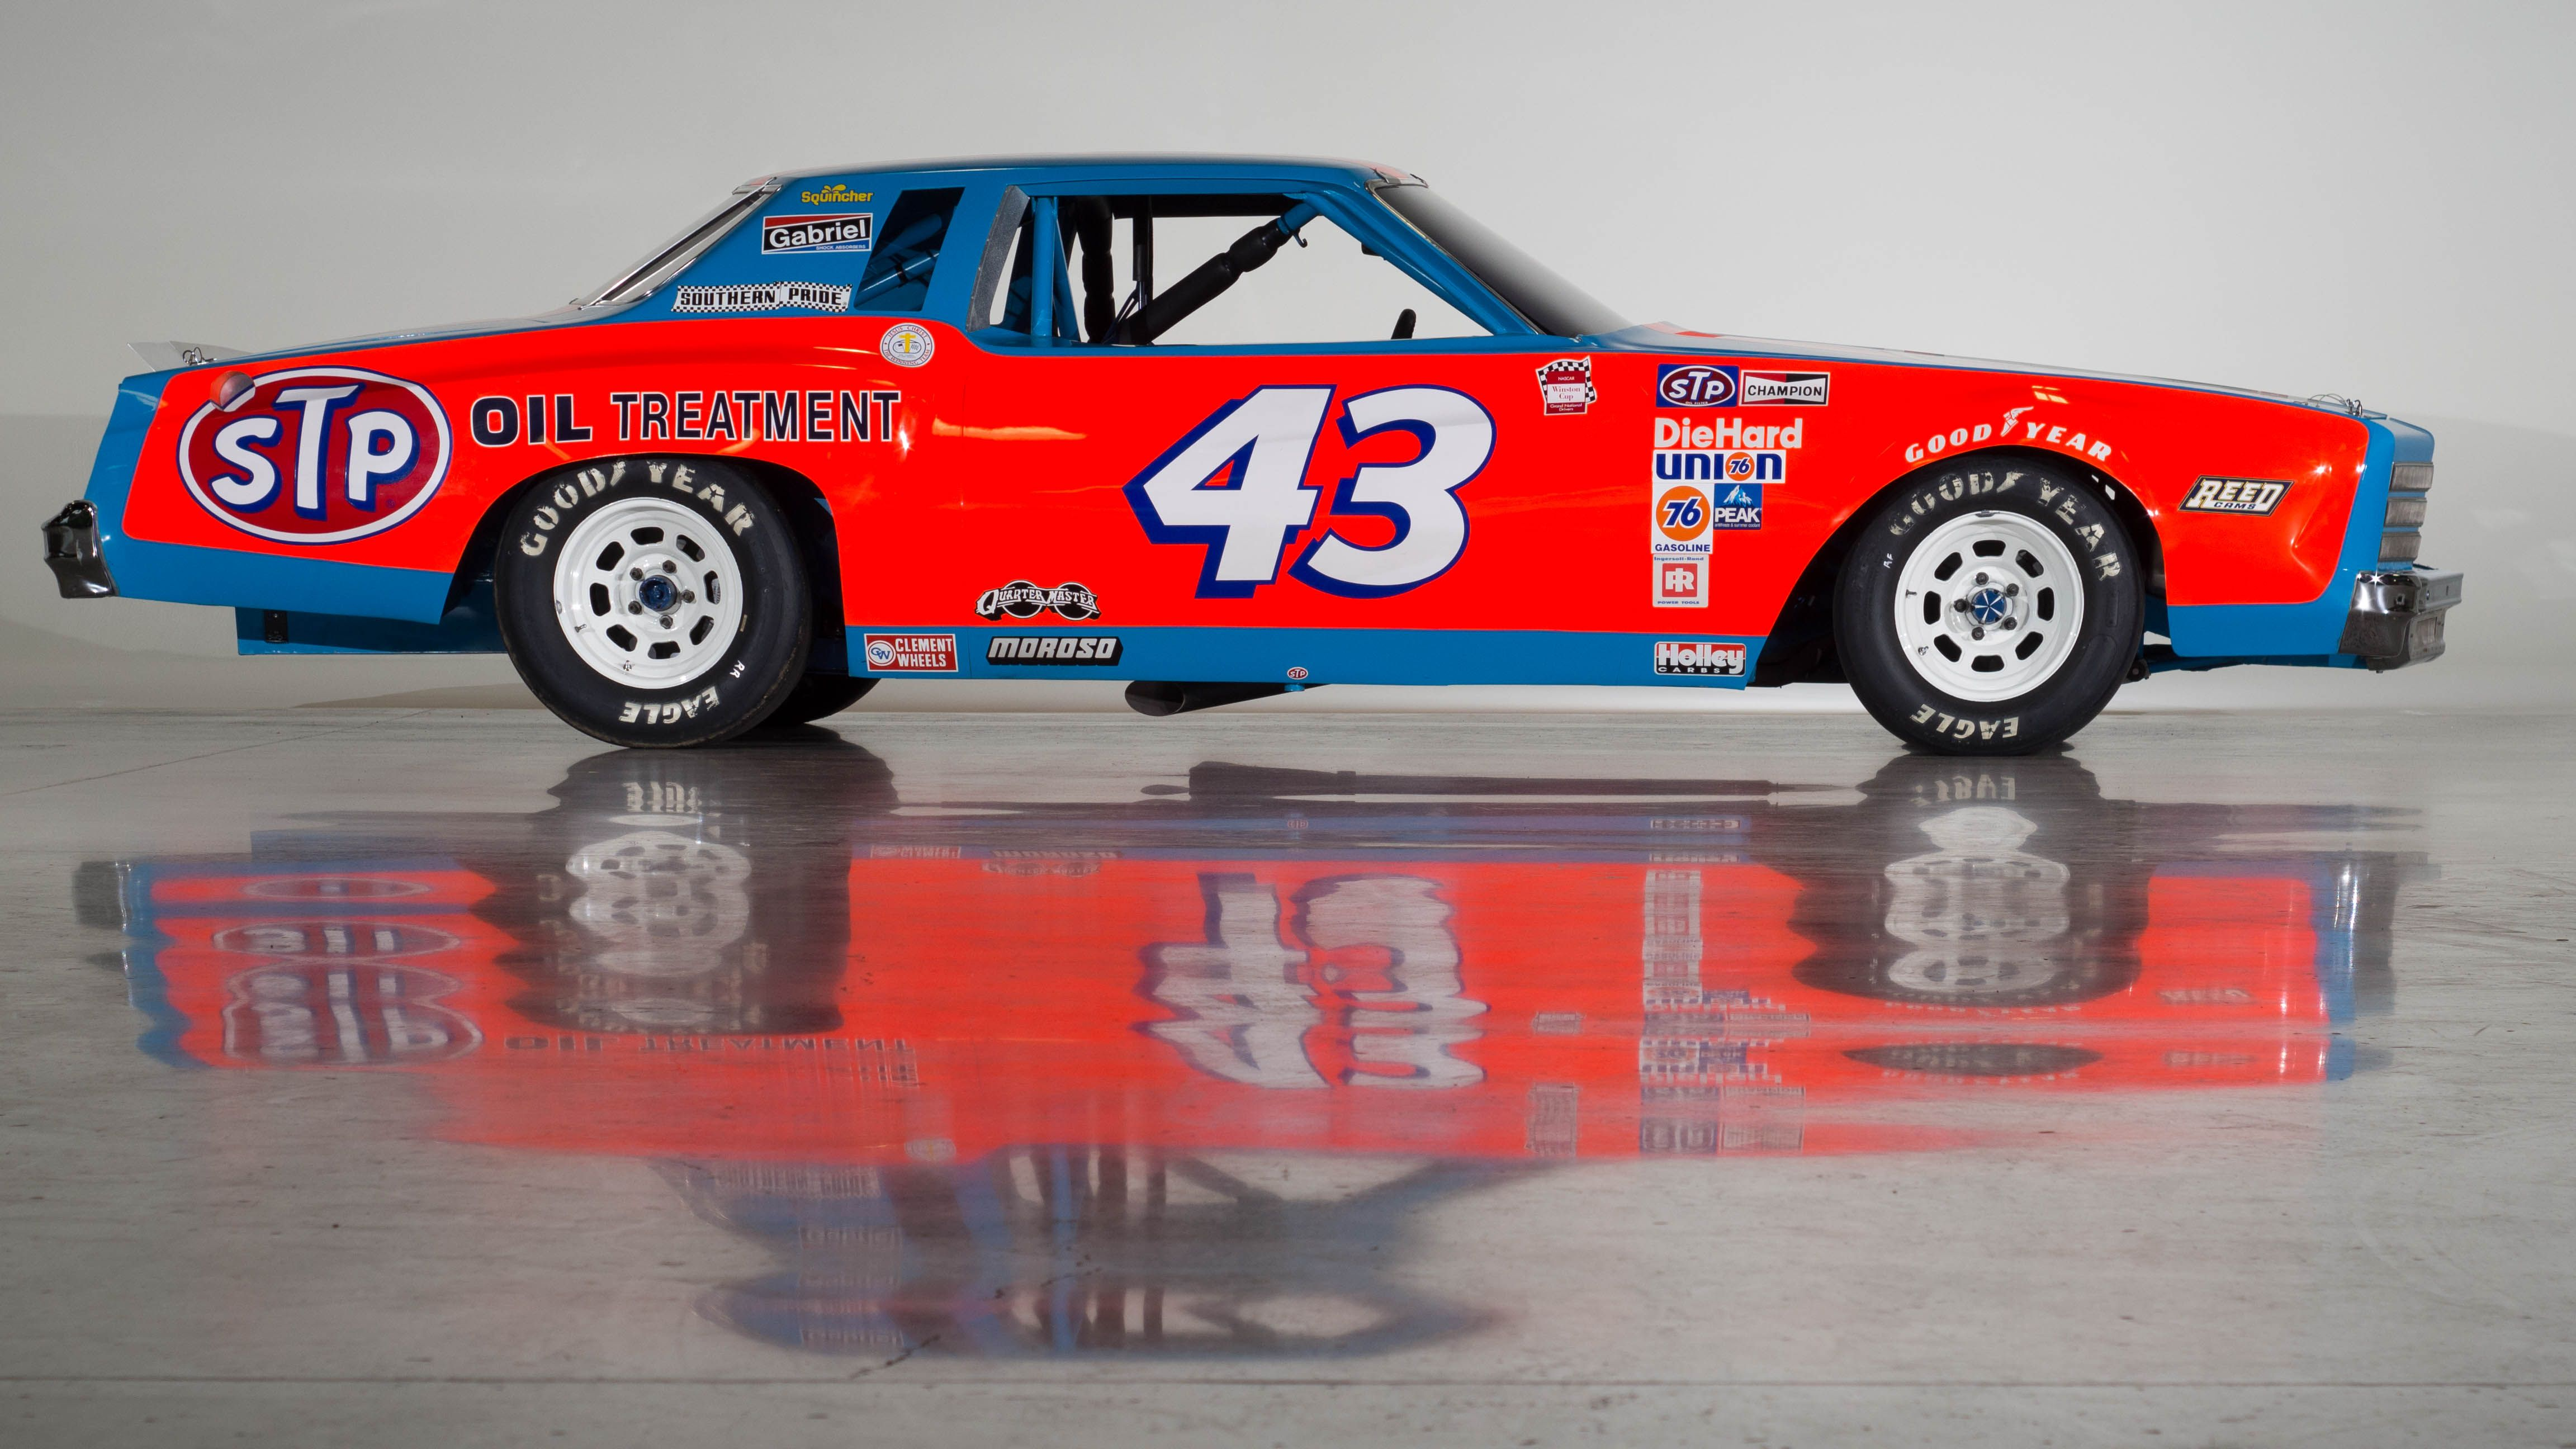 Blue 43 That S Richardpetty The King Of Nascar My Personal Hero I Mean As Far As I Mean I Really Respect A Number Nascar Race Cars Nascar Cars Racing